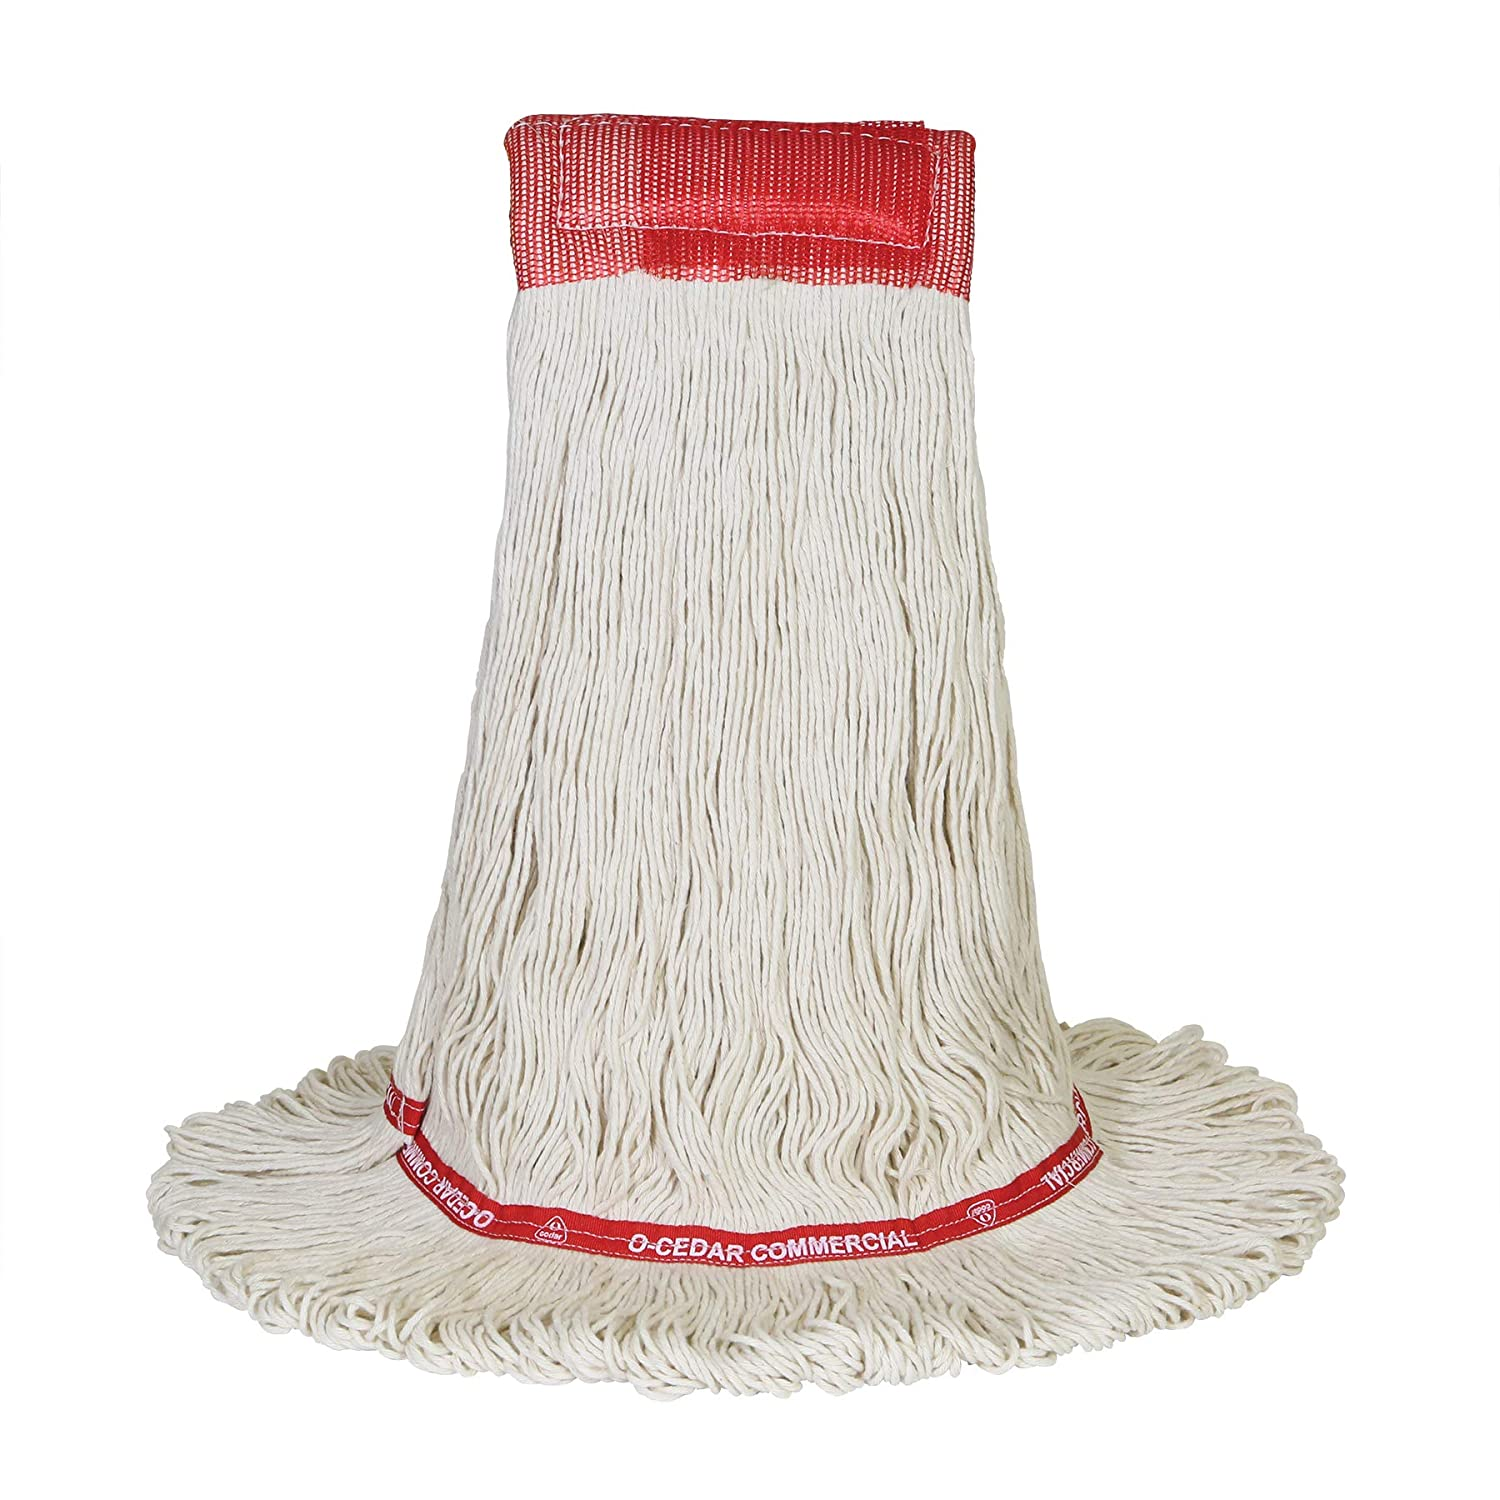 Oceeh #Ocedar Commercial 97416 Small MaxiPlus Full Cotton Mop, Nextstep Commercial Products Pack of 12